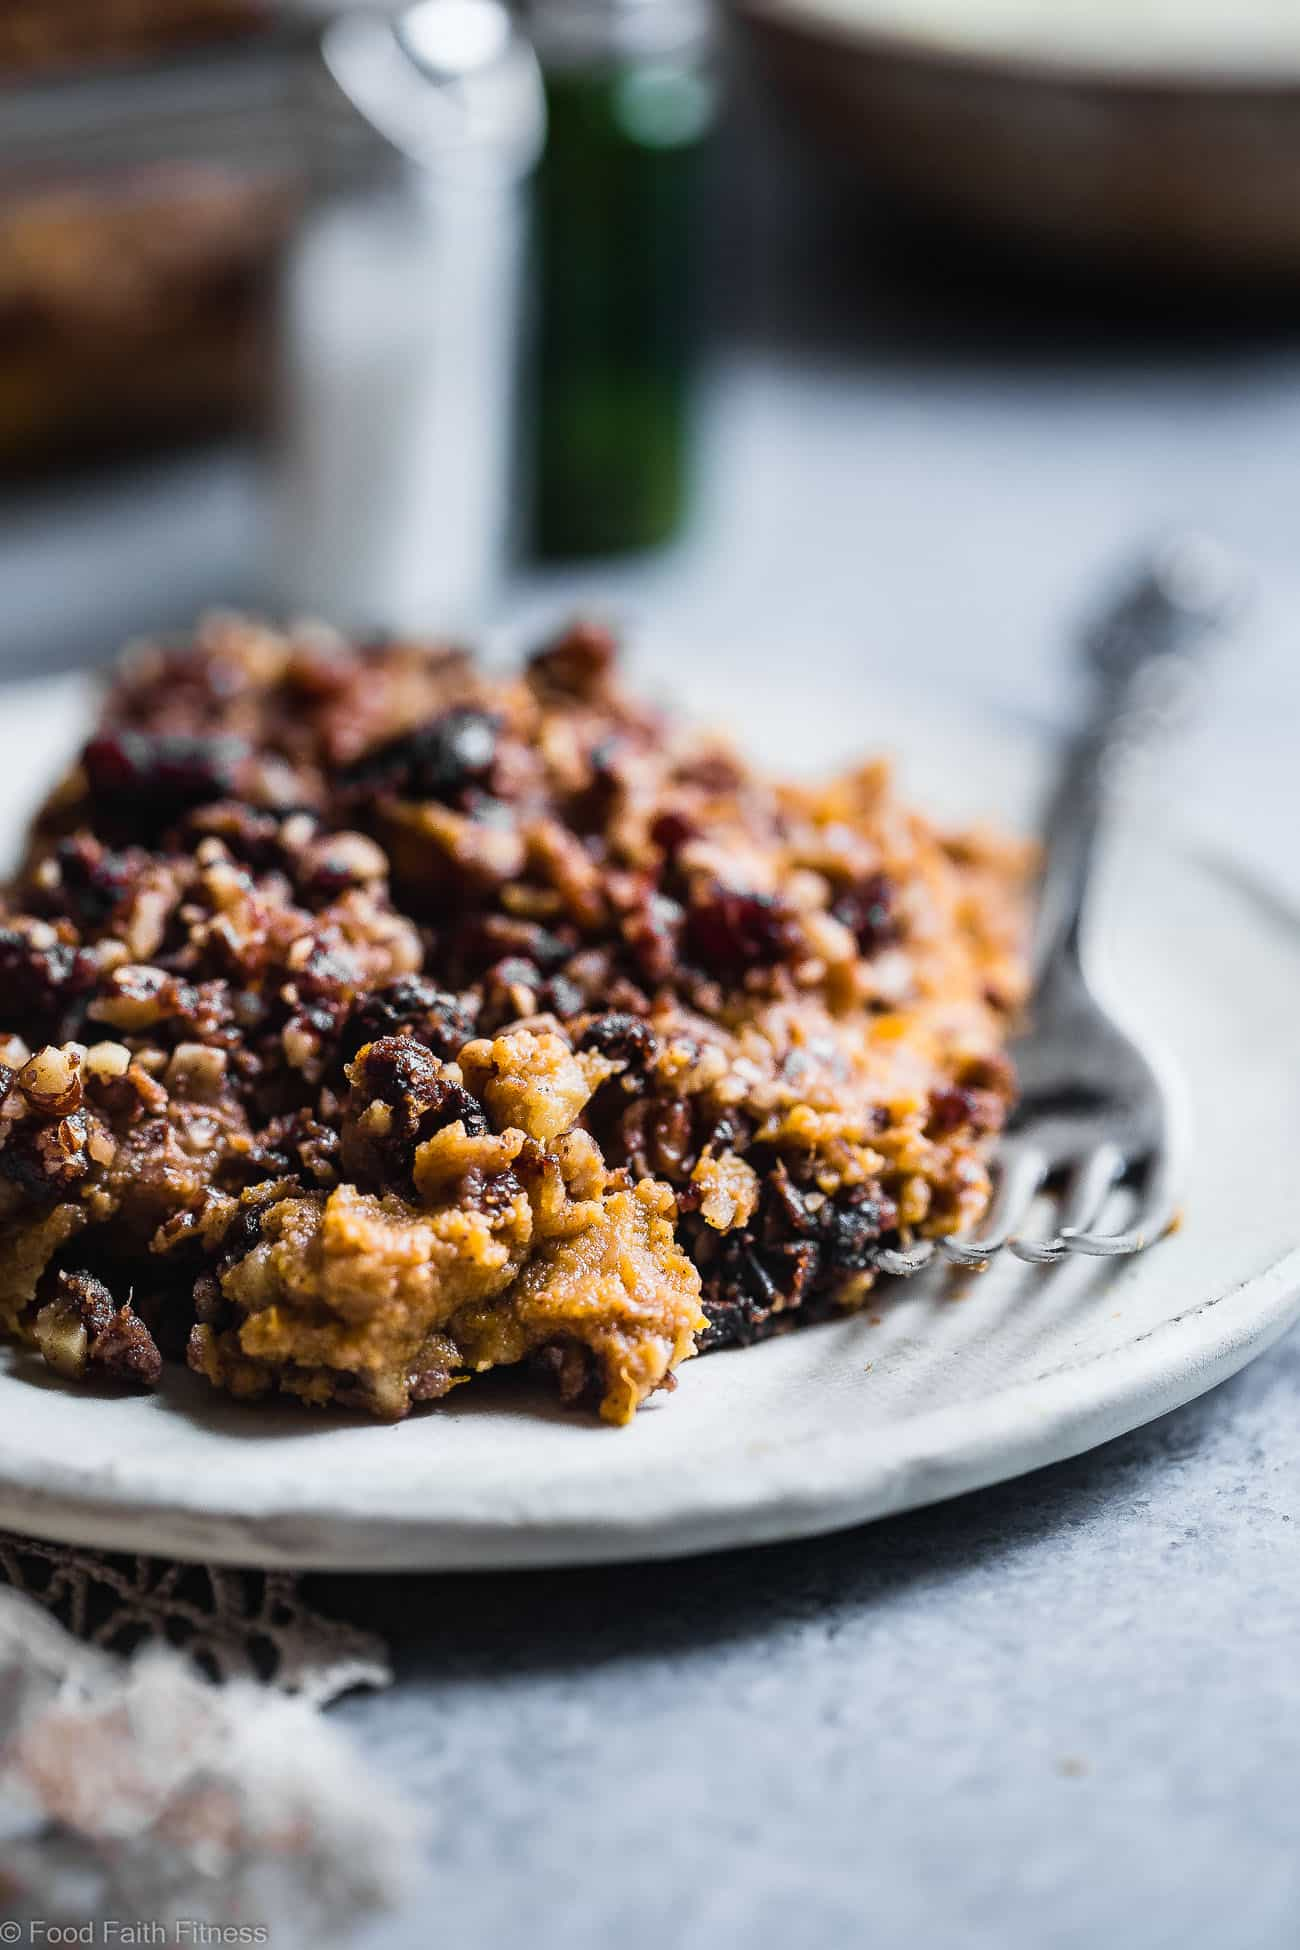 Paleo Easy Vegan Sweet Potato Casserole with Pecan Topping - the best side dish for Thanksgiving! No one will believe it's vegan friendly, whole30 compliant and gluten/grain/dairy/sugar AND egg free! | Foodfaithfitness.com | @FoodFaithFit